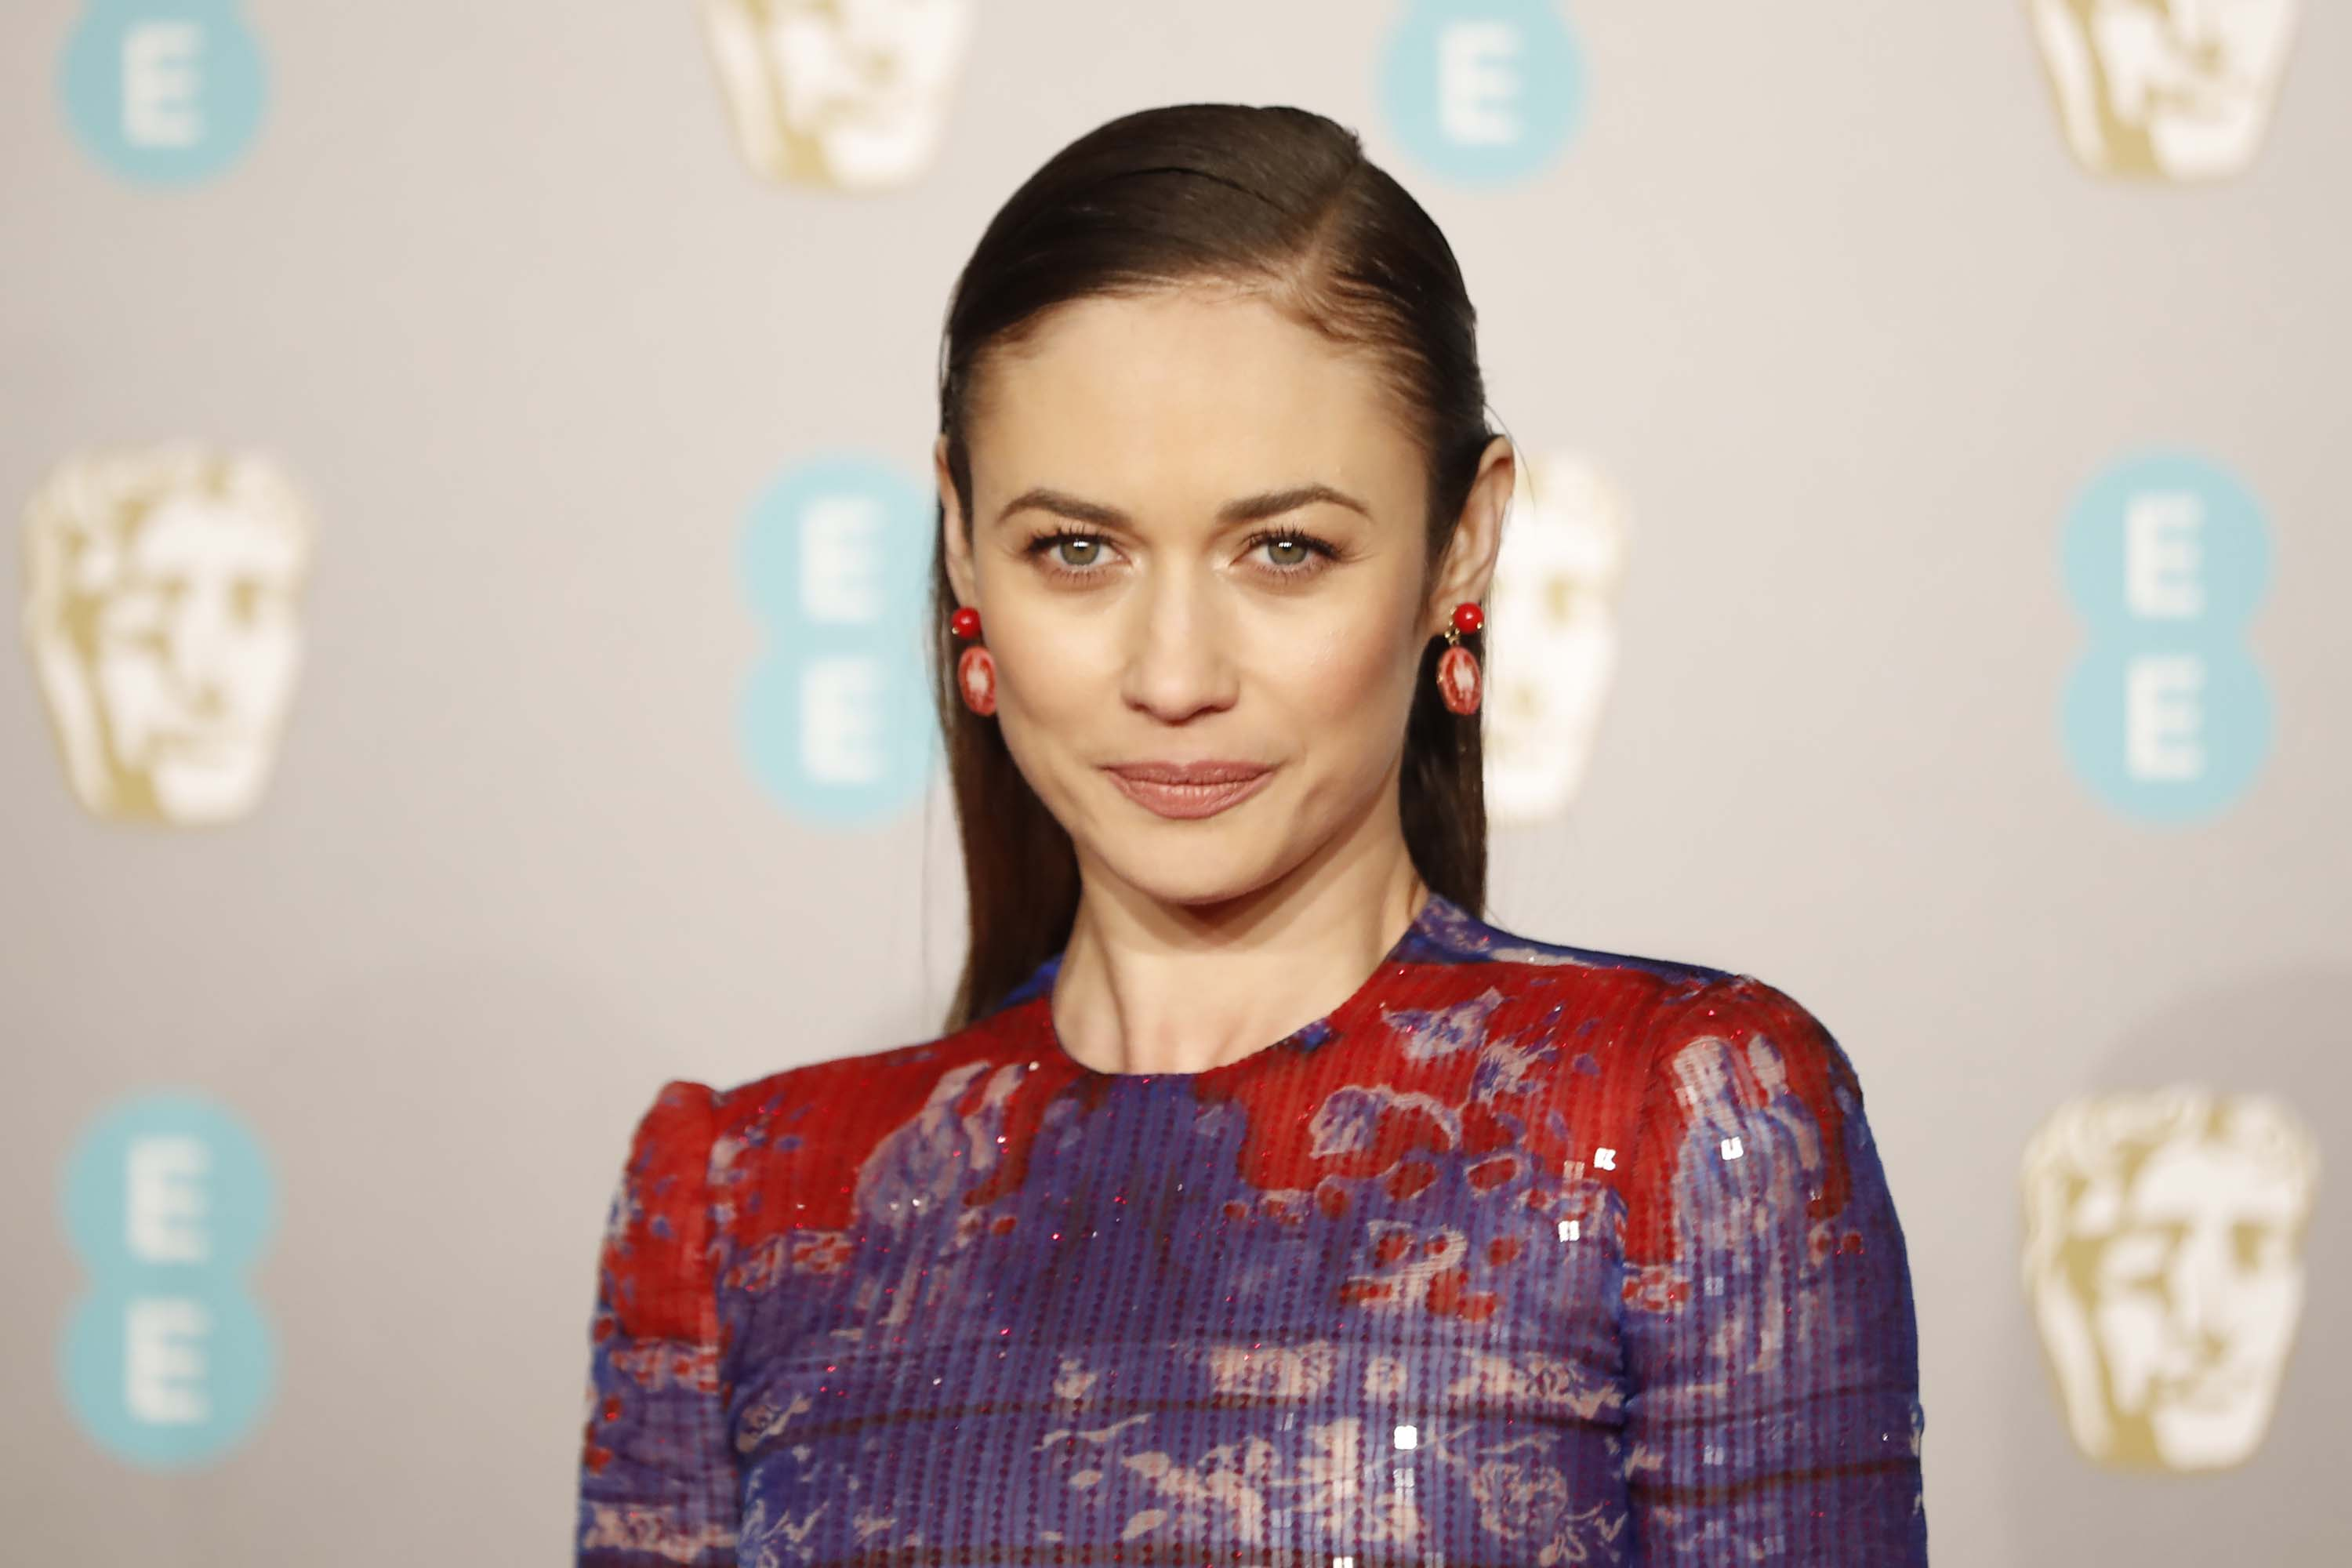 French actress and model Olga Kurylenko poses on the red carpet upon arrival at the BAFTA British Academy Film Awards in London, in February 2019.